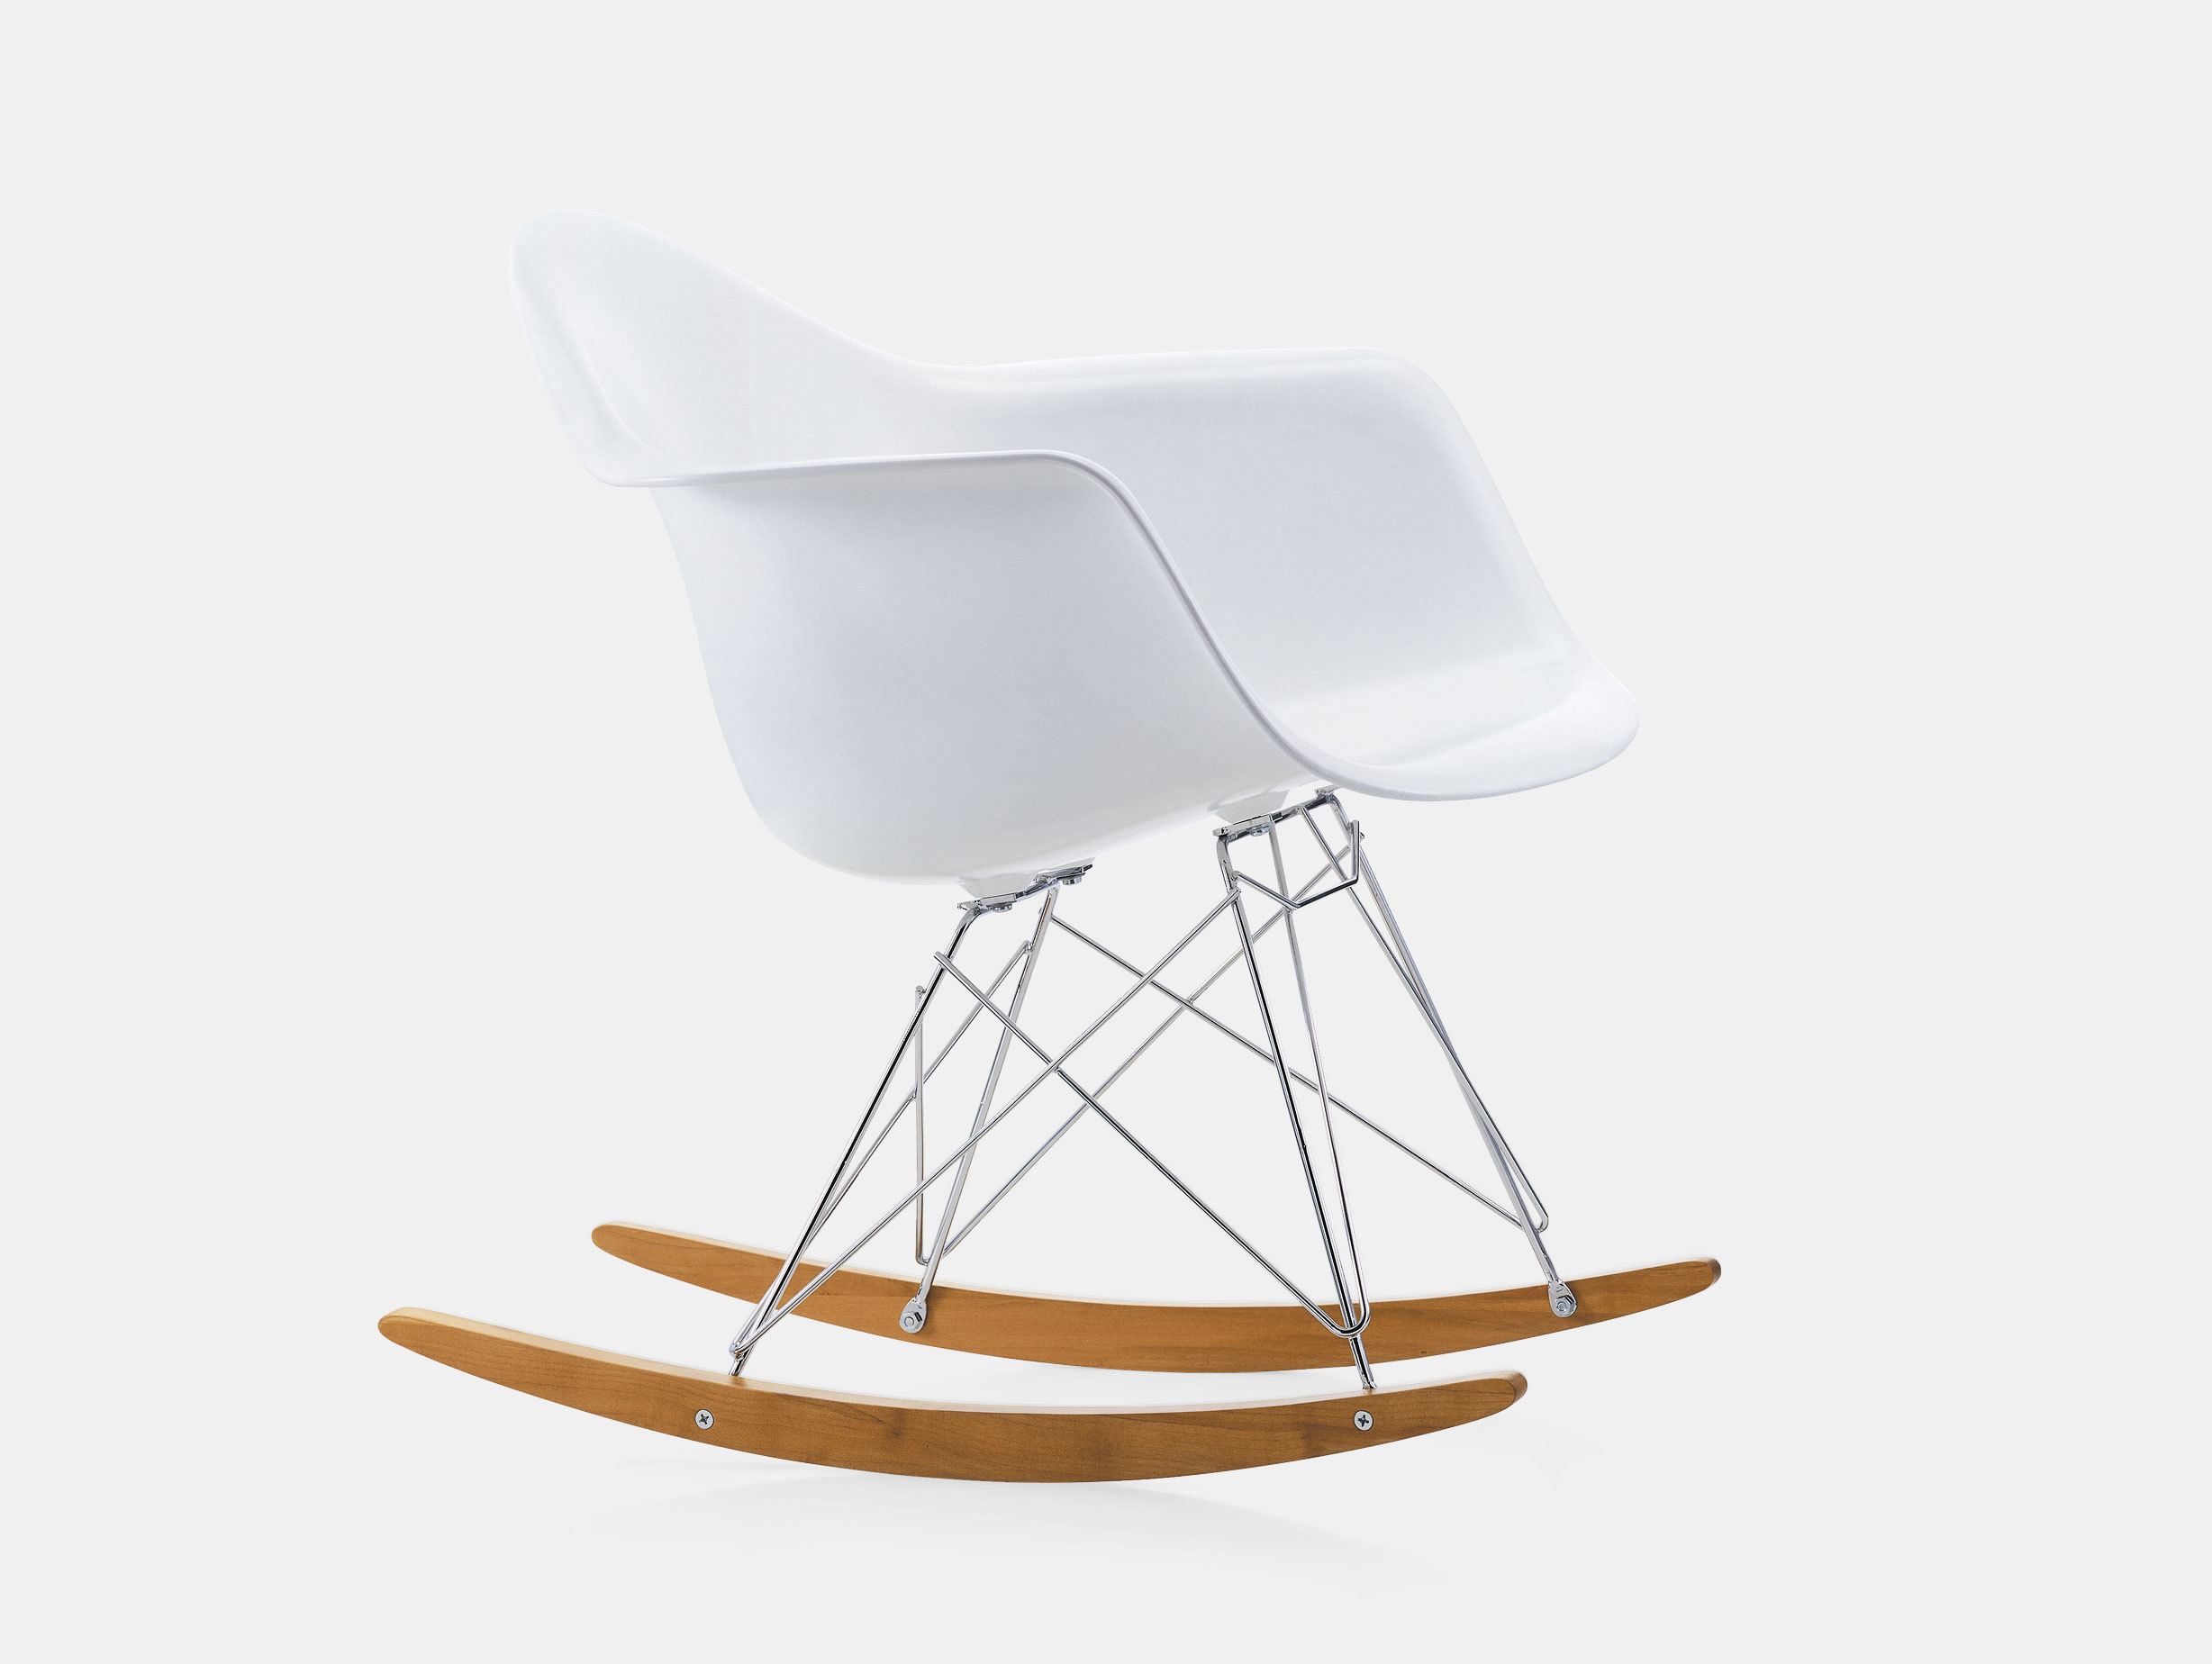 Eames RAR Rocking Chair image 2